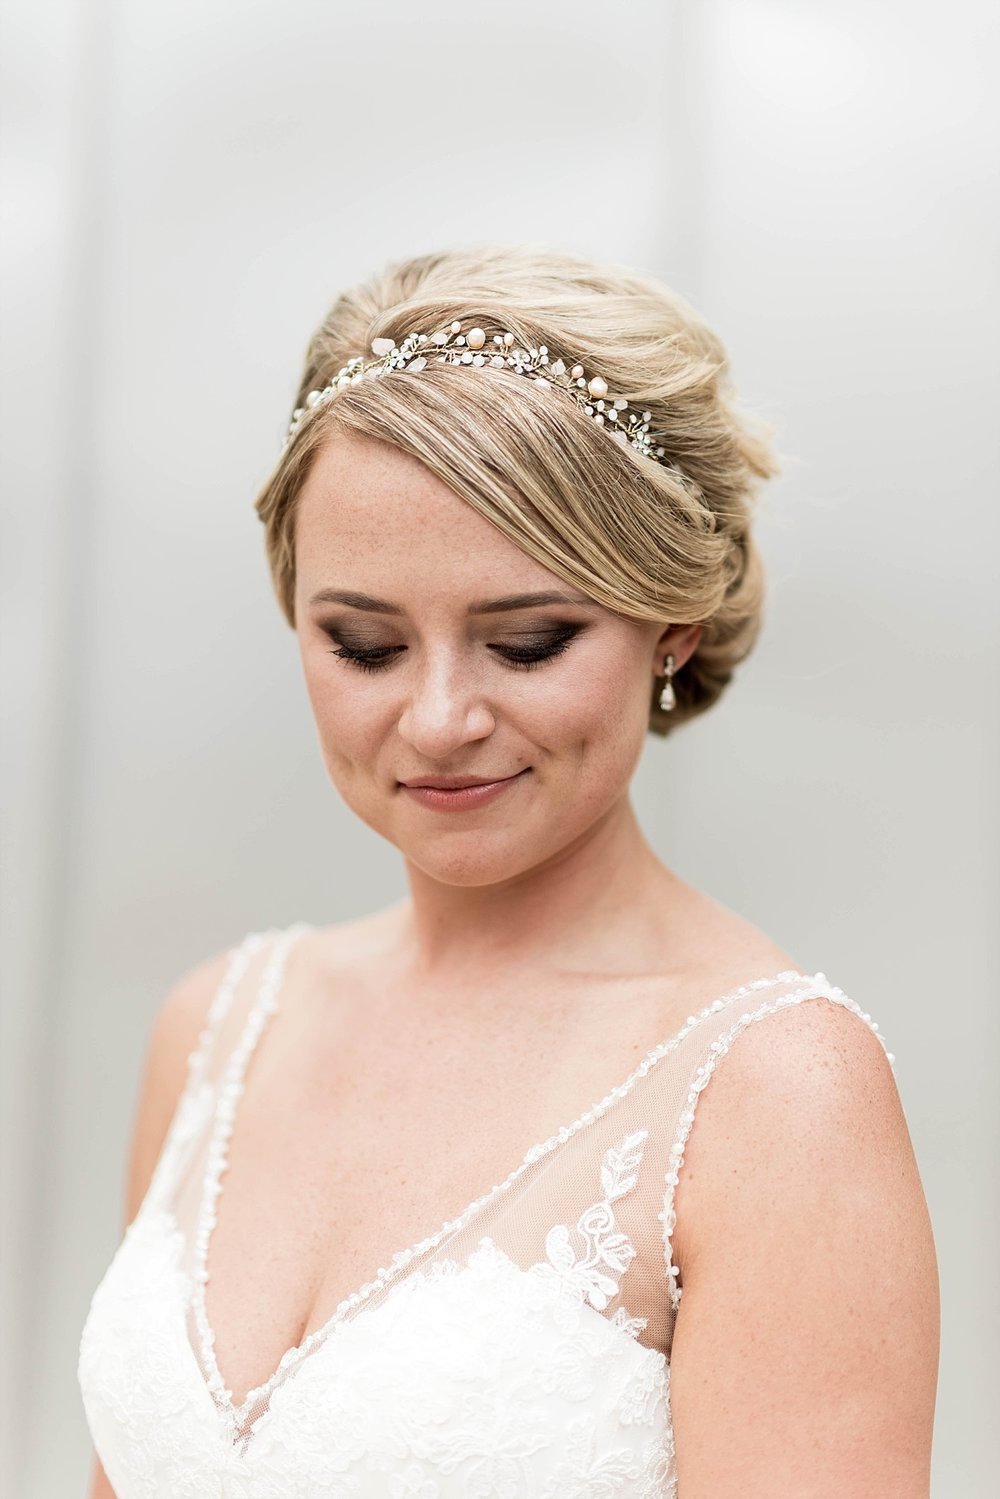 Bridal party wedding photography bride gown head piece